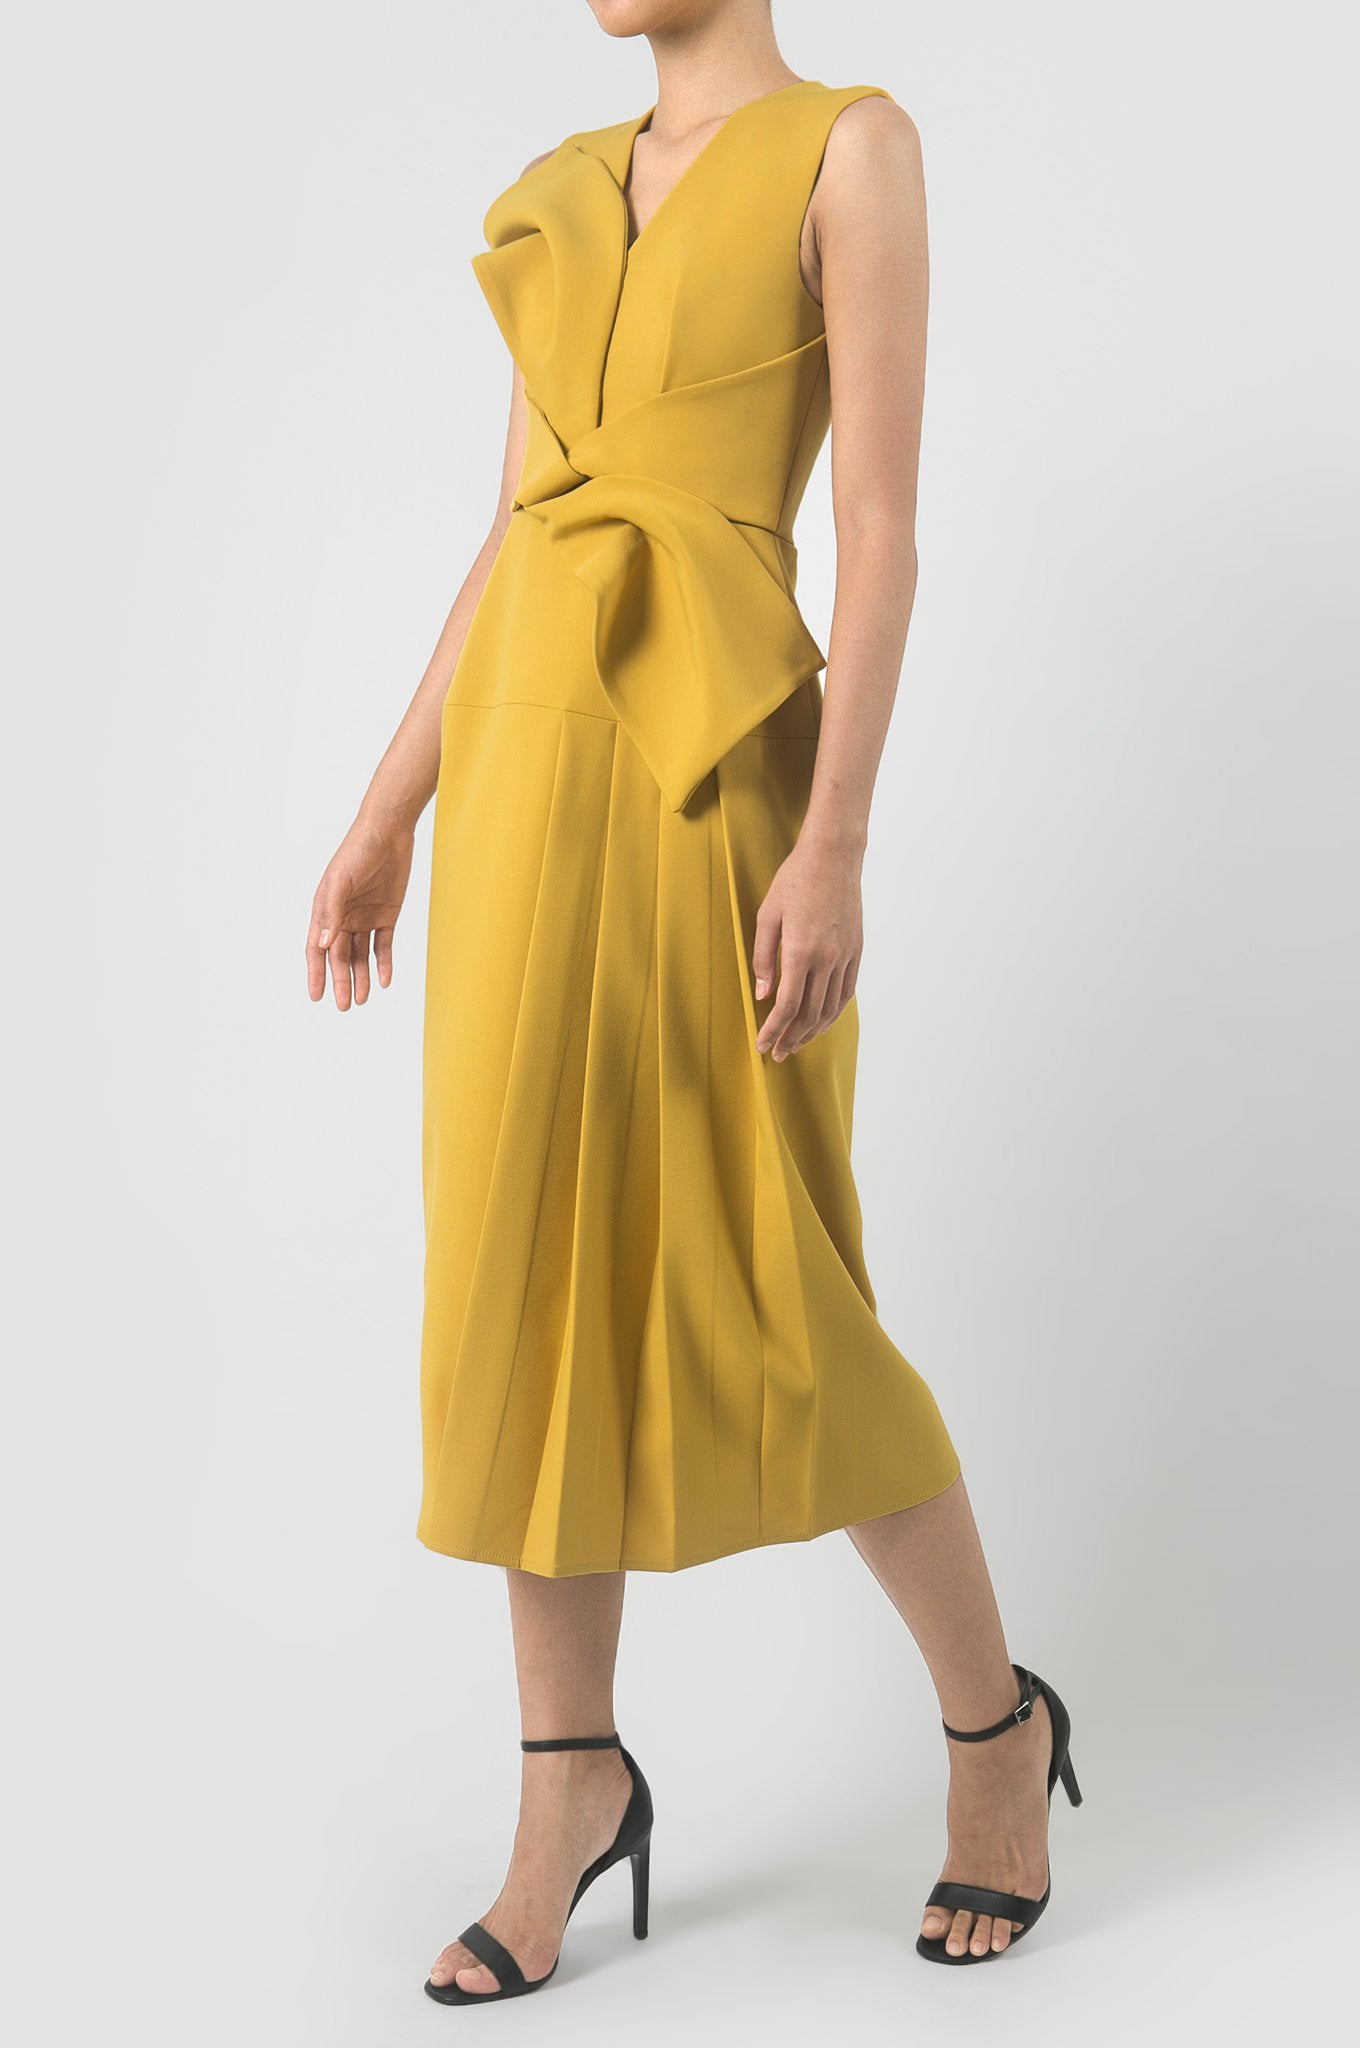 Kumera Yellow Artifact Dress